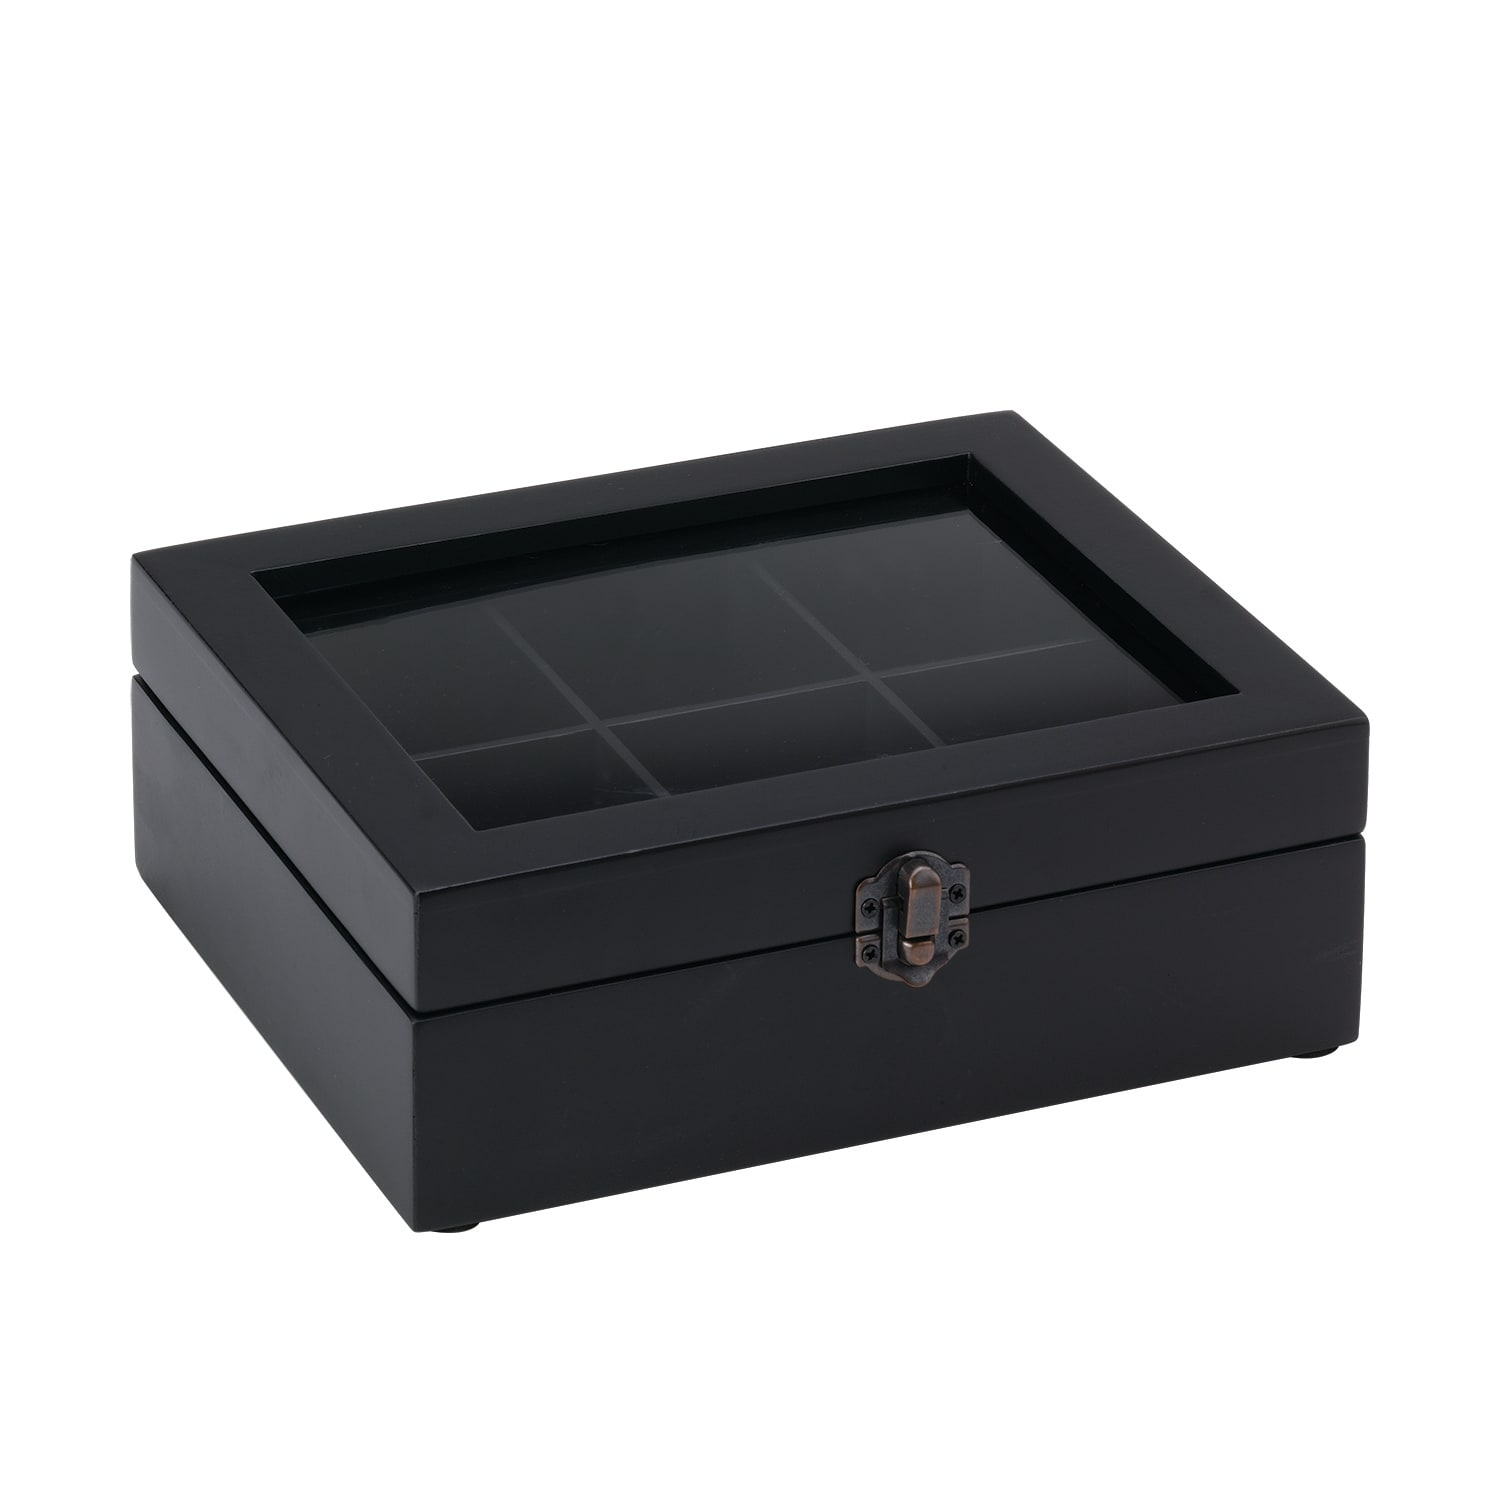 "Service Ideas TB006 Tea Box w/ 6-Compartments, 8.25 x 7.25"", Beechwood"